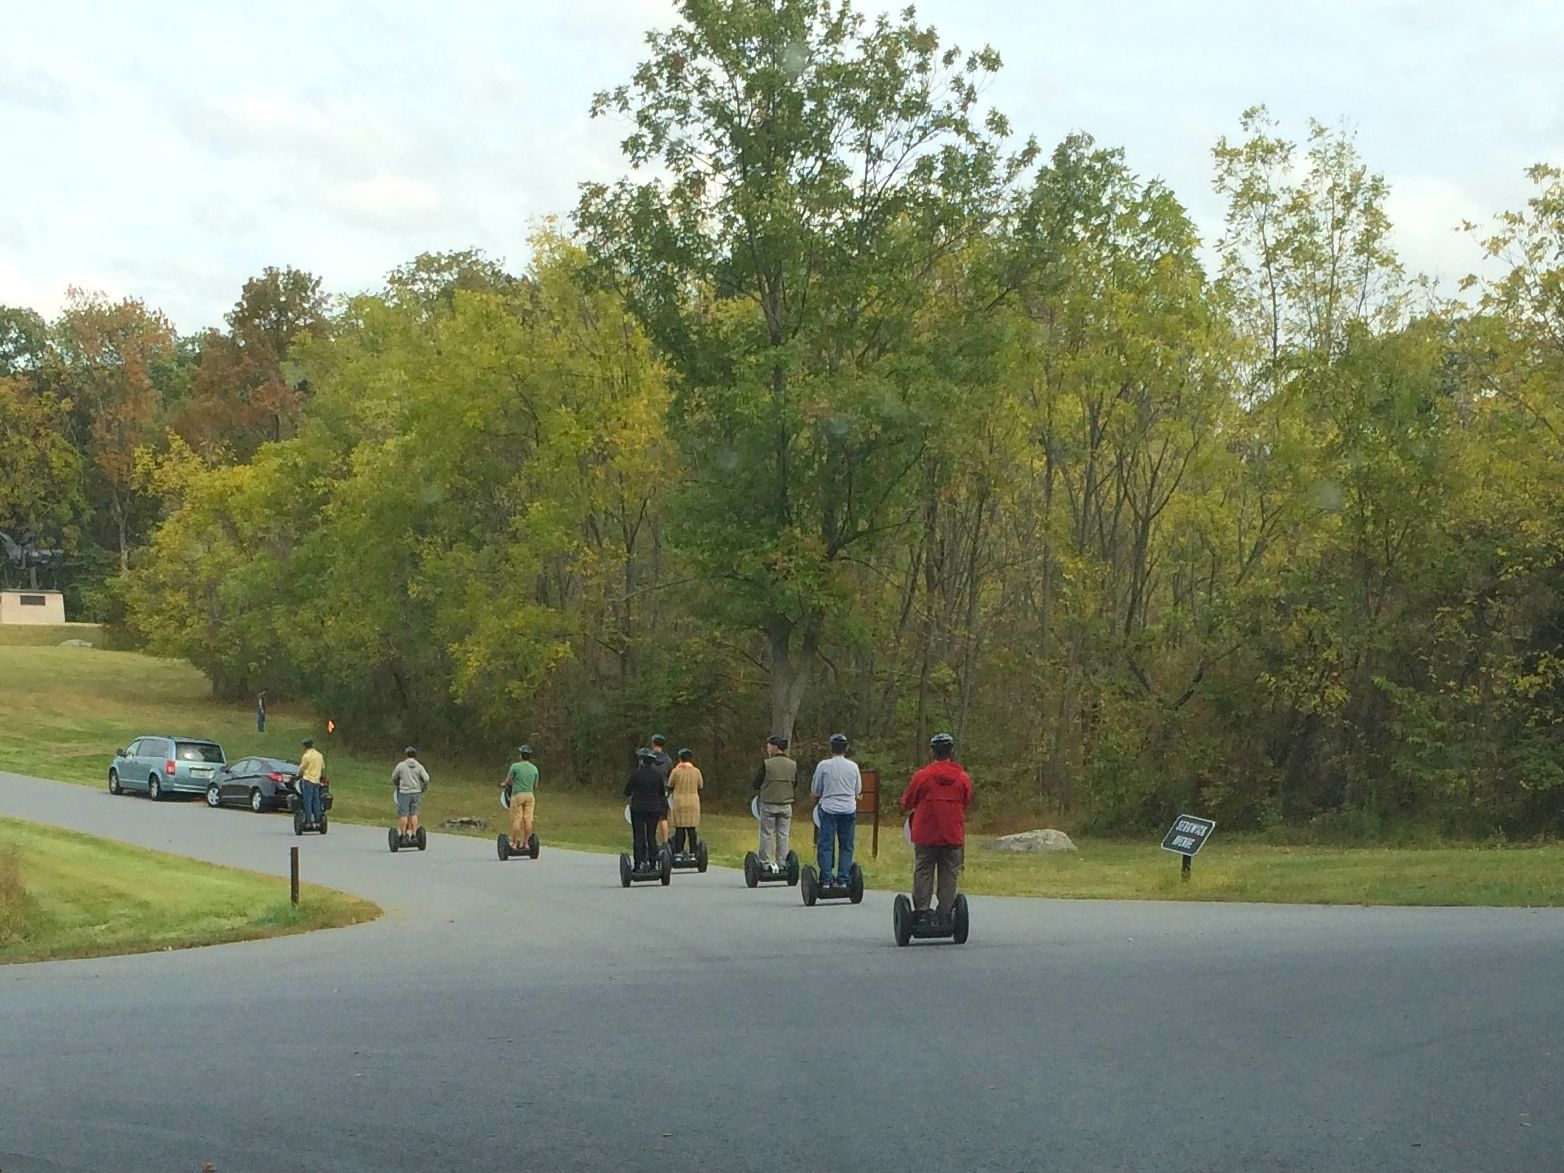 Segway tours - add to the to-do list